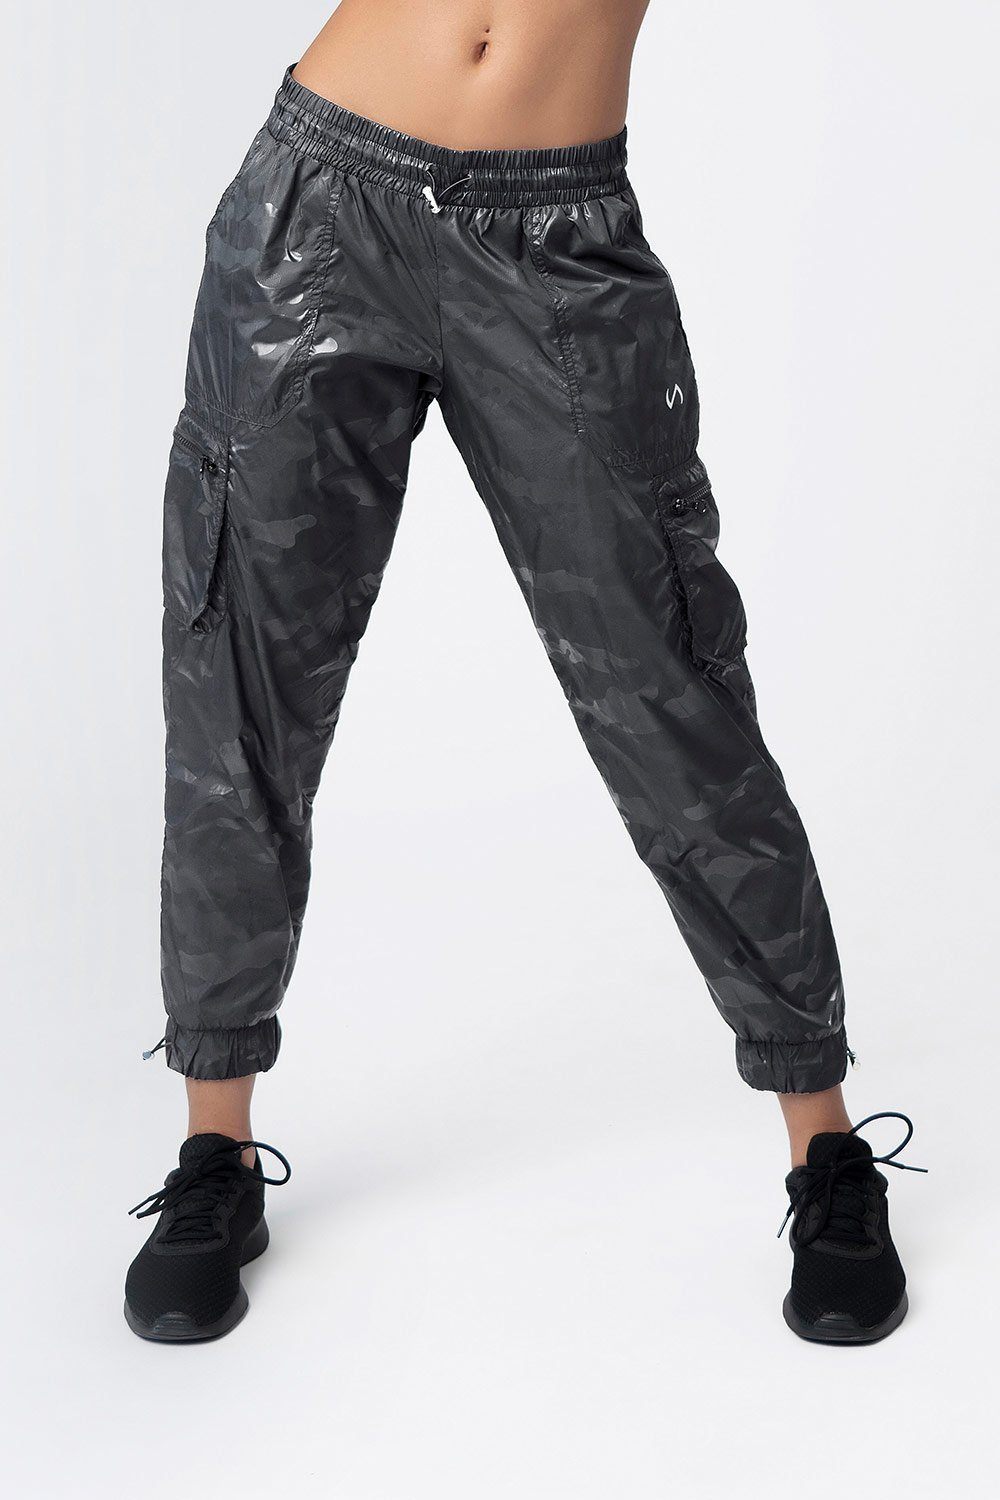 TLF Covert Camo Gym-To-Street��� Joggers - Joggers & Pants - TLF Apparel | Take Life Further